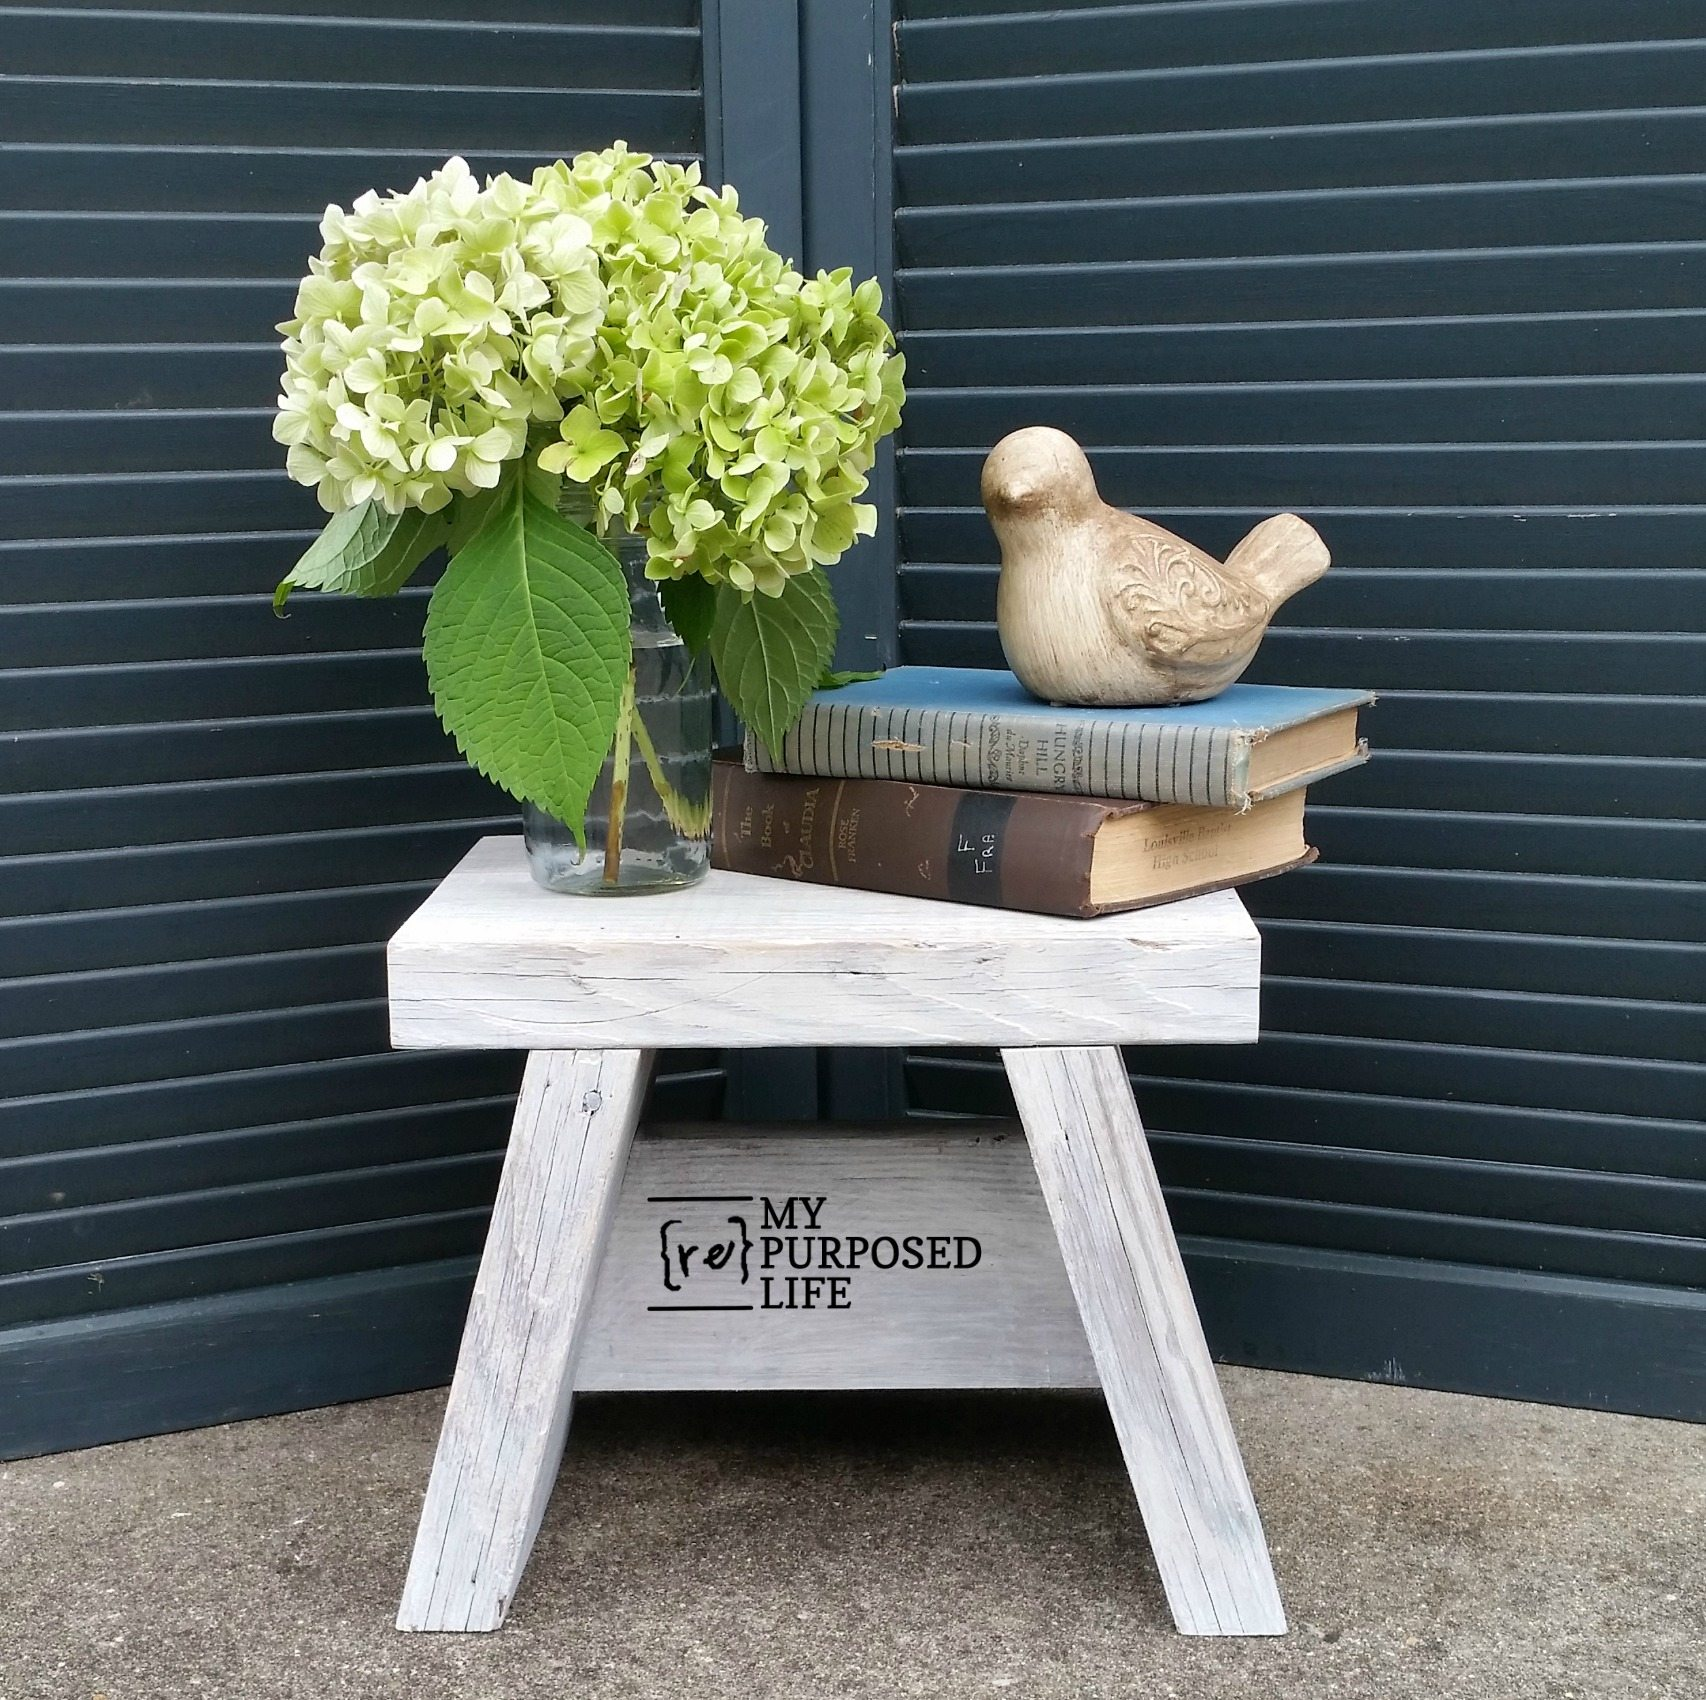 Enjoyable Small Step Stool Easy One Board Project My Repurposed Creativecarmelina Interior Chair Design Creativecarmelinacom